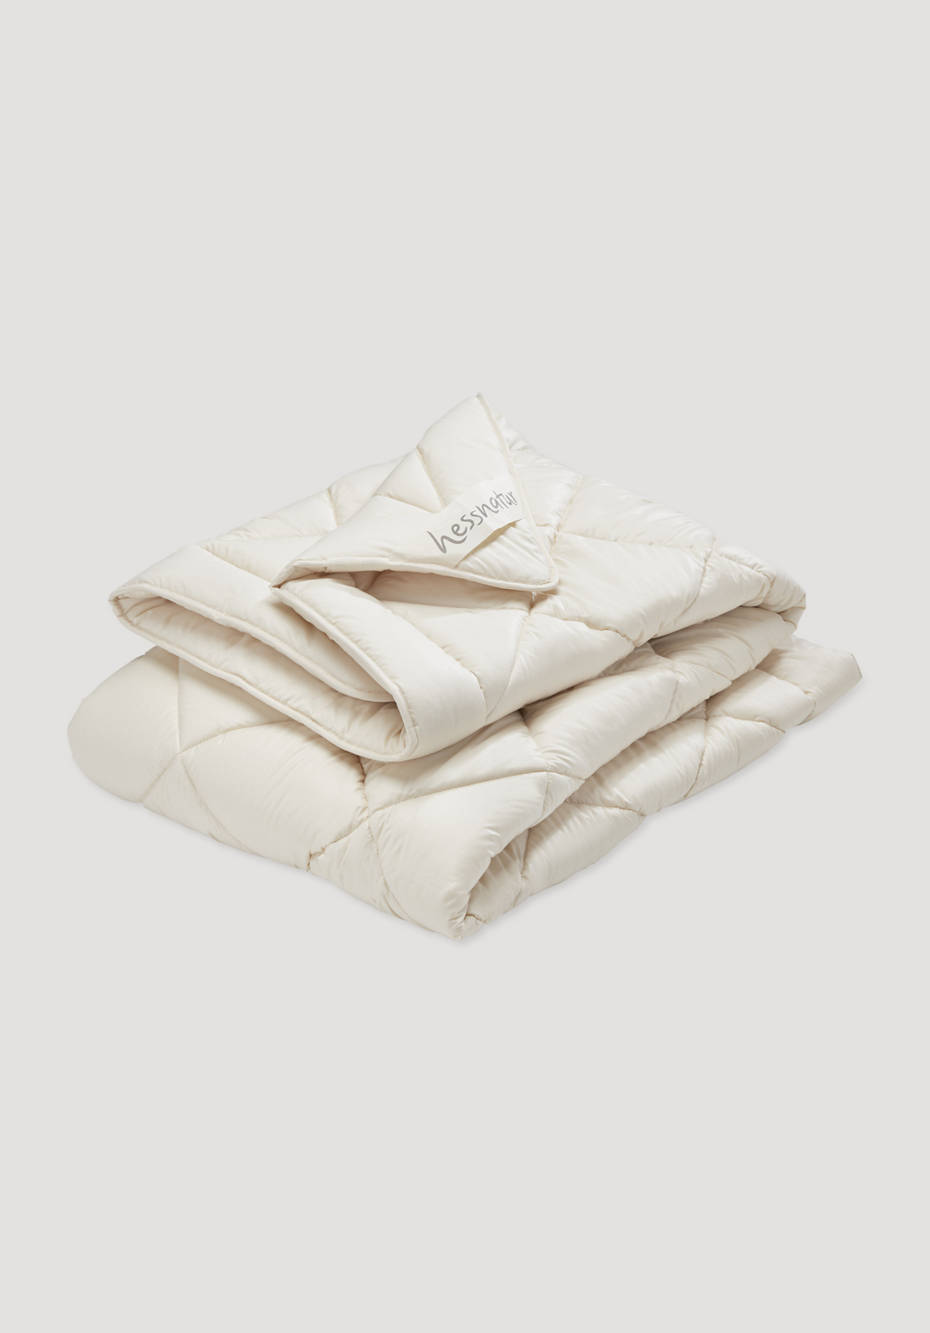 Year-round duvet with pure organic new wool